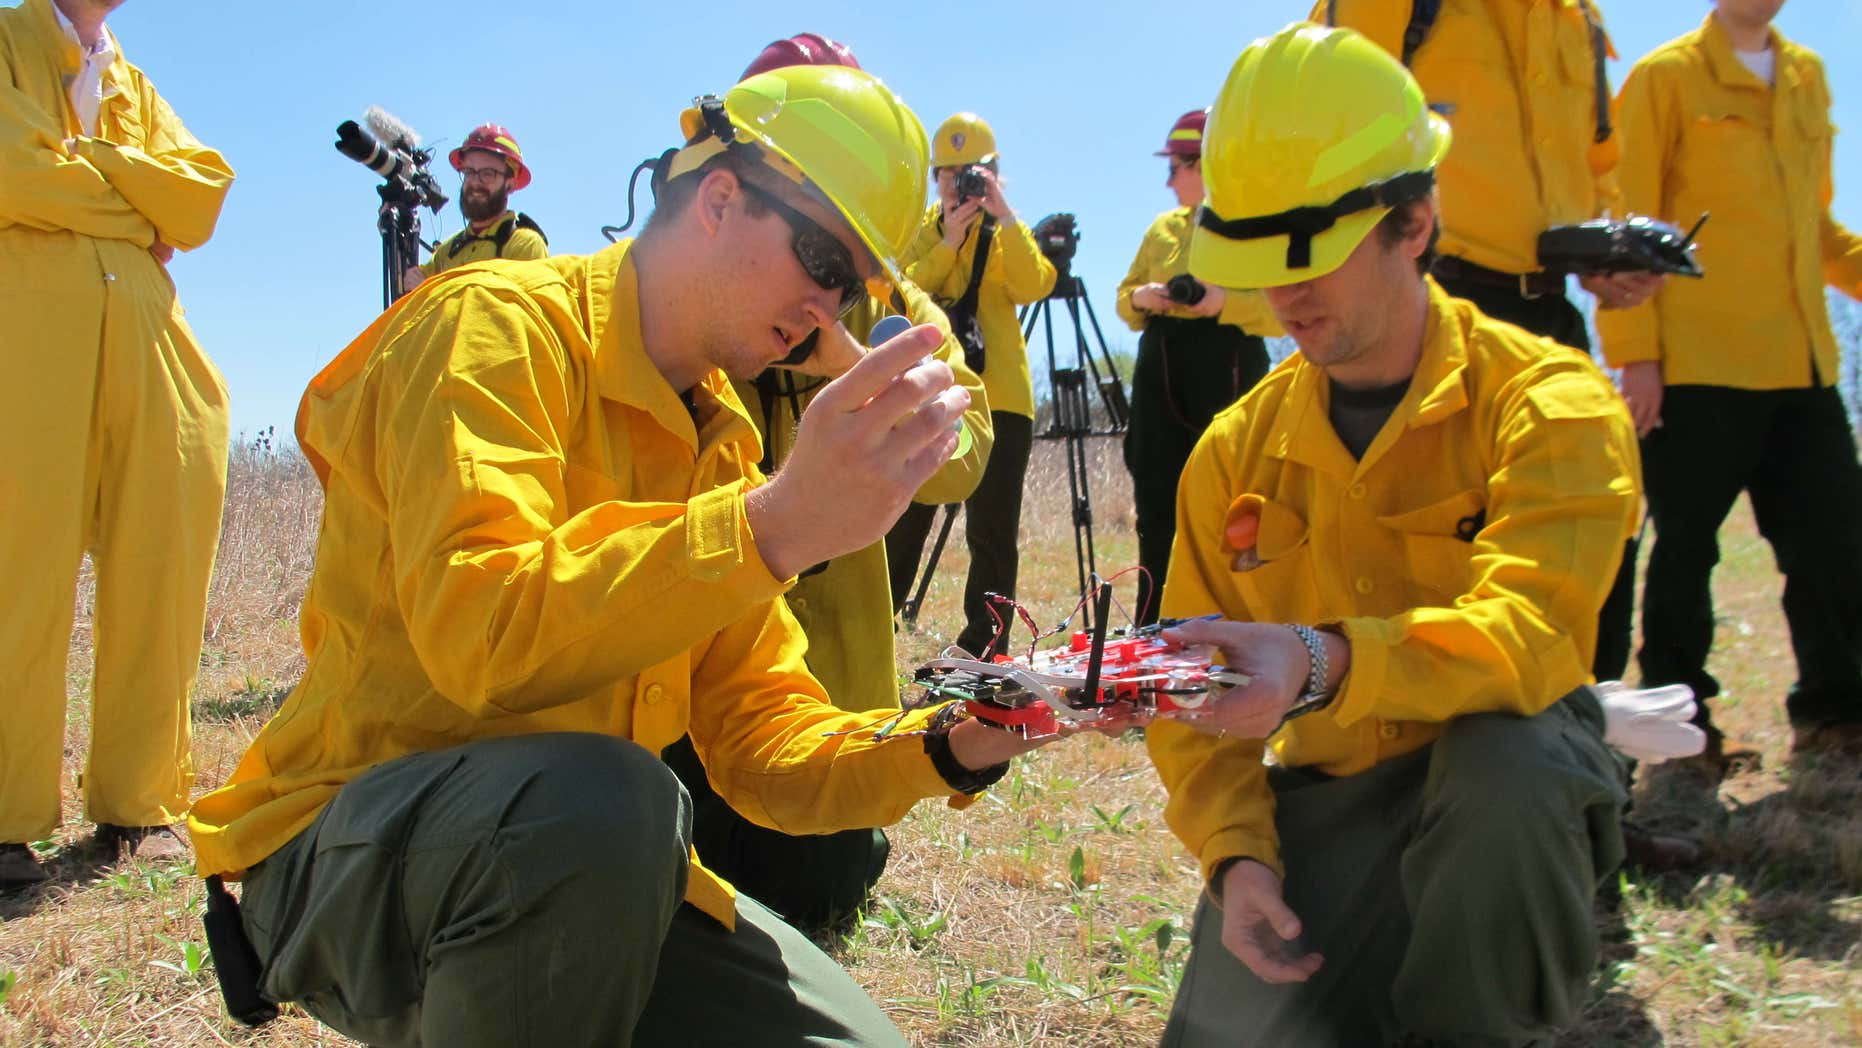 April 22, 2016: University of Nebraska-Lincoln researchers Carrick Detweiler, left, and Sebastian Elbaum, right, prepare their drone for flight at the Homestead National Monument in Beatrice, Neb./